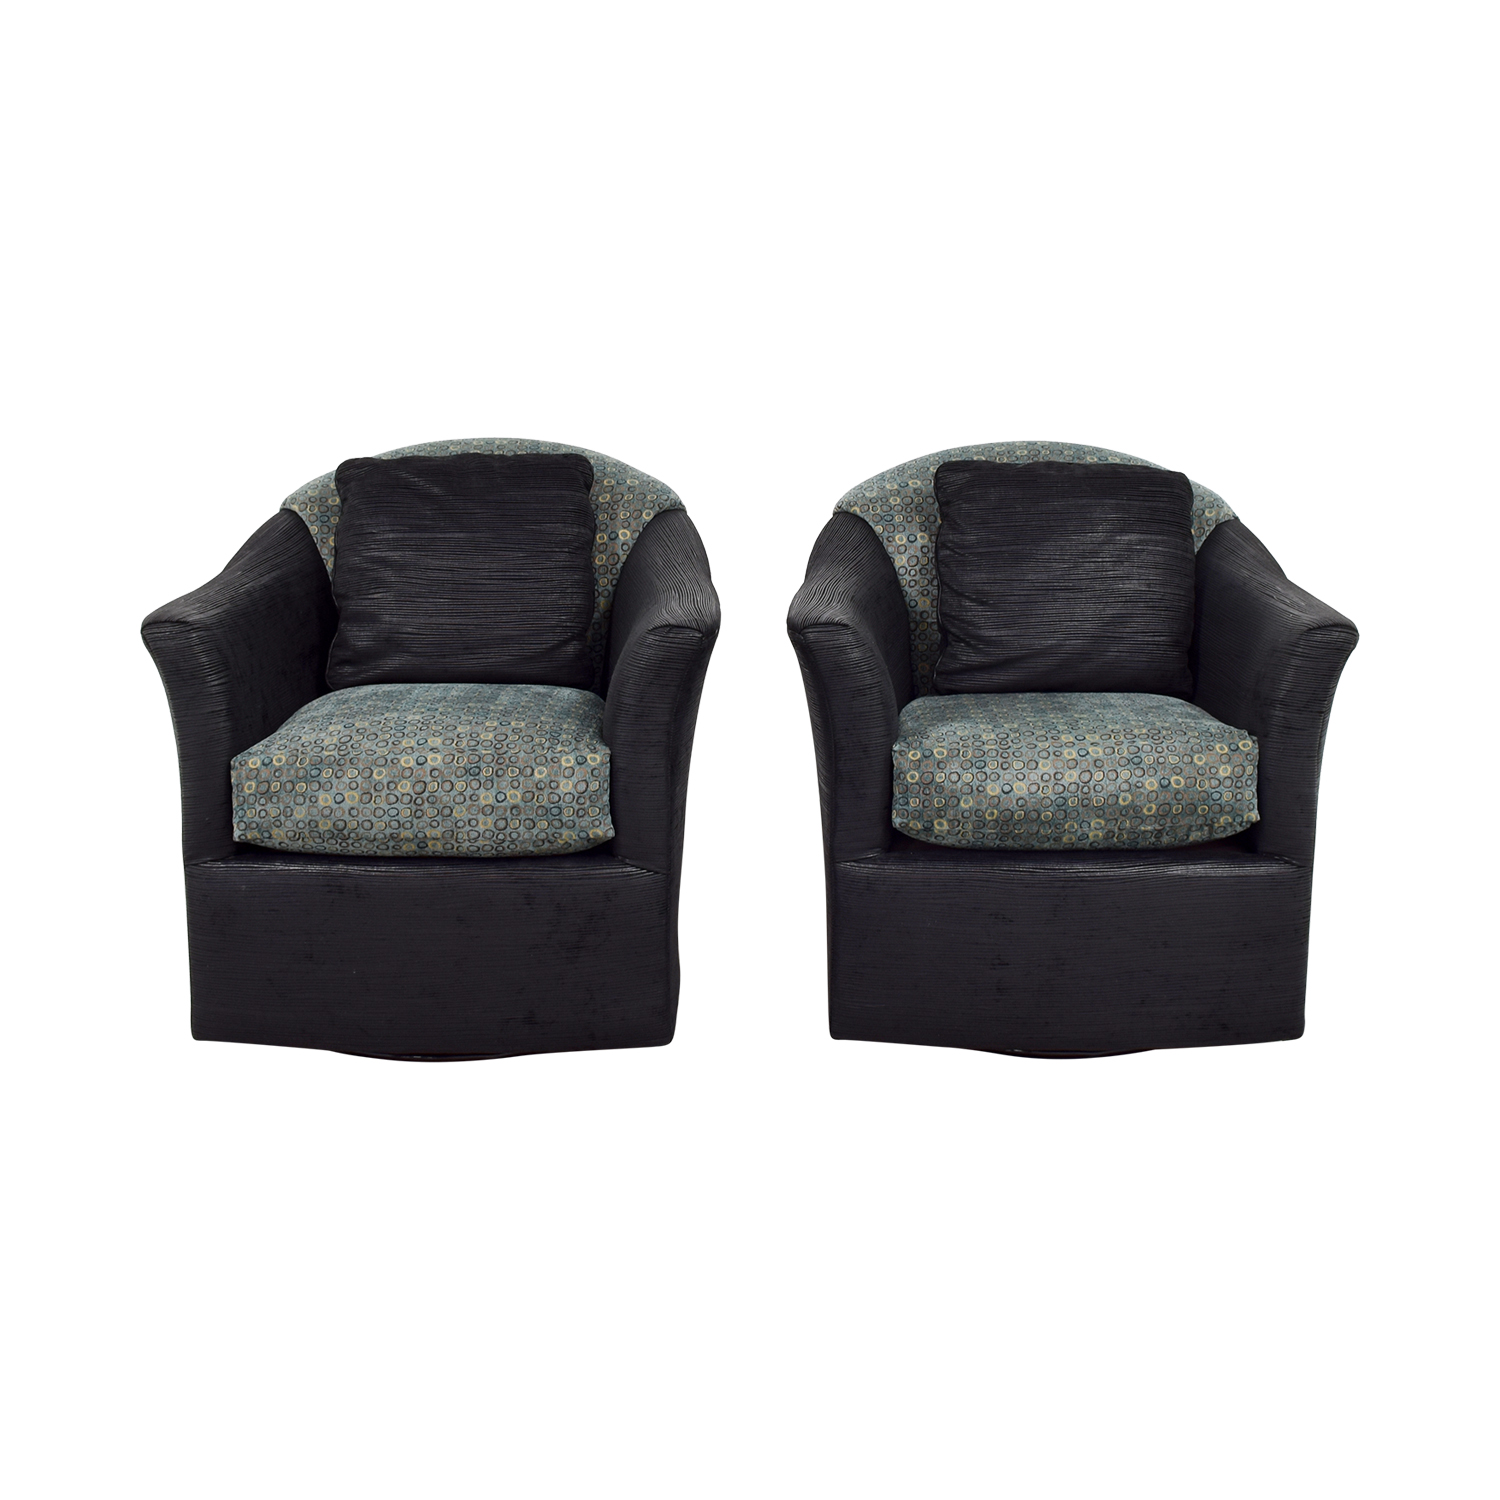 Strange 90 Off Fairfield Chair Company Fairfield Barrel Black Blue And Gold Accent Chairs Chairs Ibusinesslaw Wood Chair Design Ideas Ibusinesslaworg